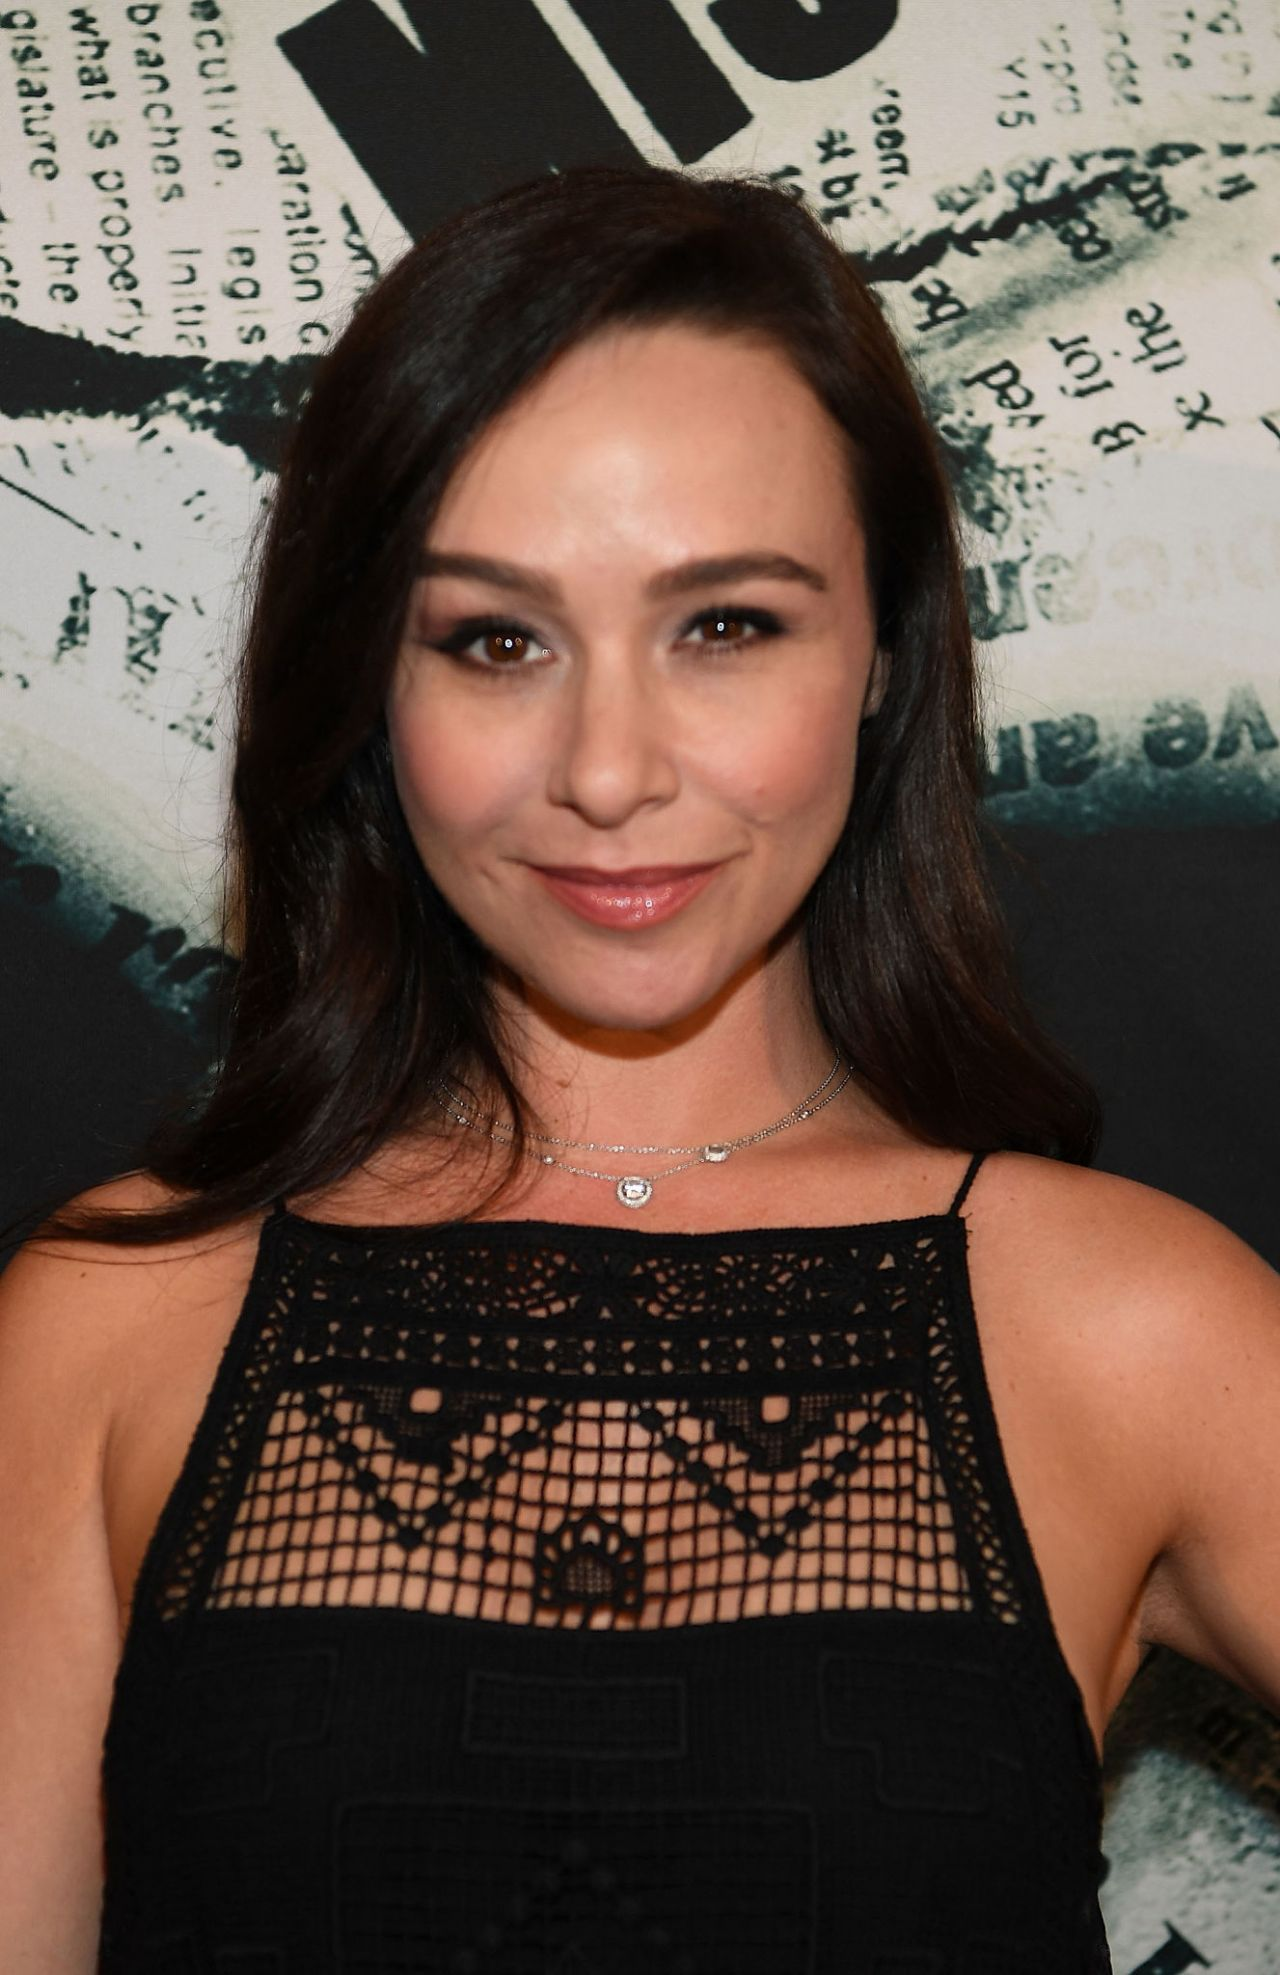 Danielle Harris nudes (66 photo), photo Selfie, YouTube, cleavage 2016